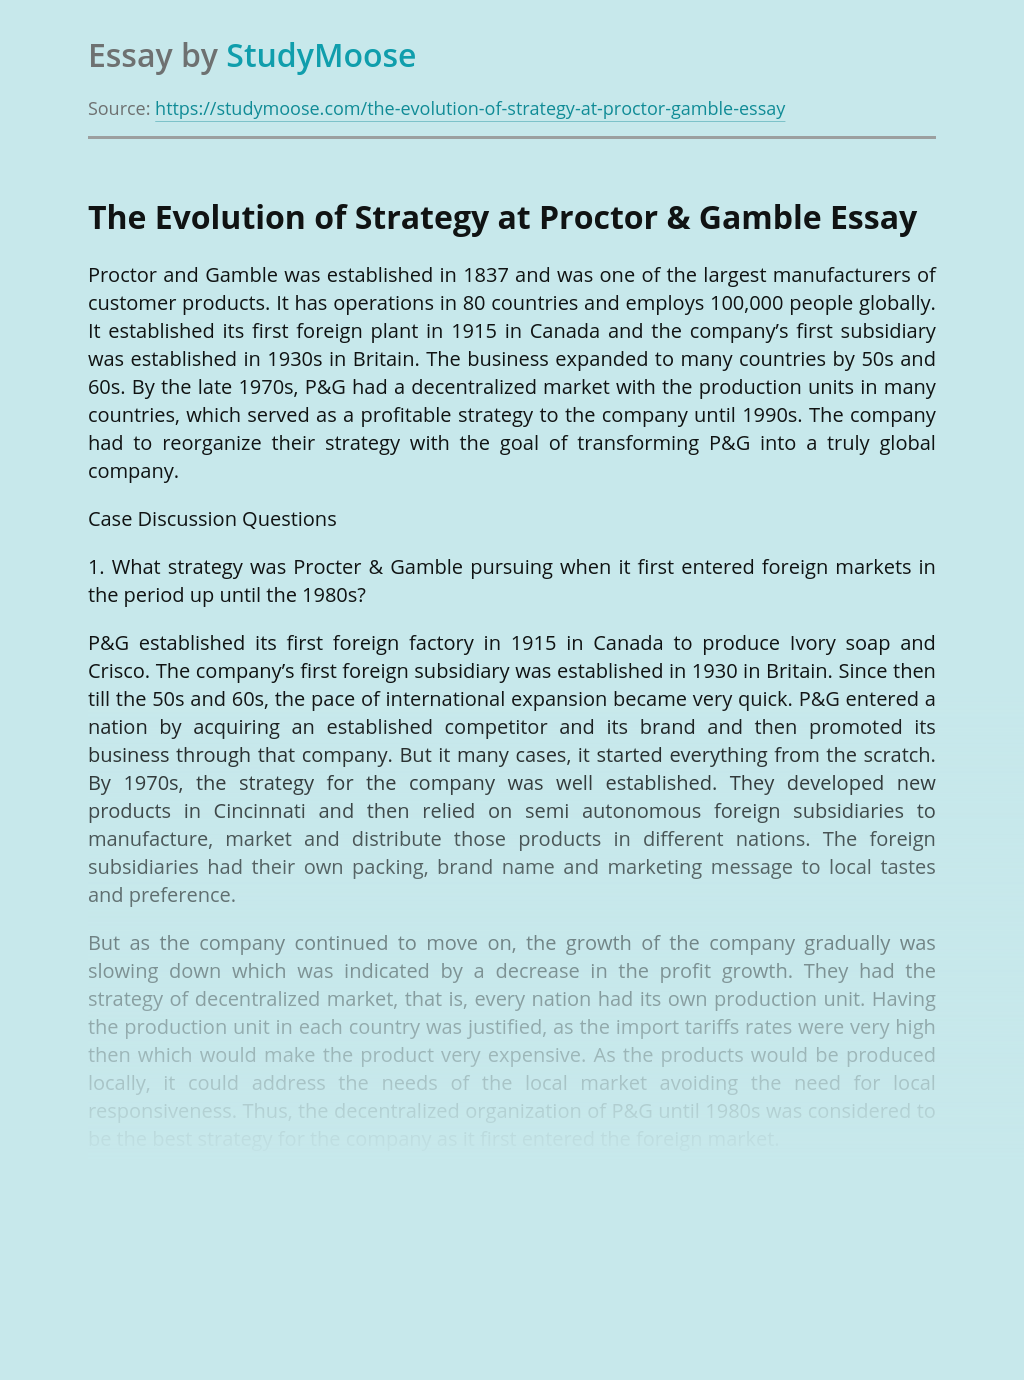 The Evolution of Strategy at Proctor & Gamble